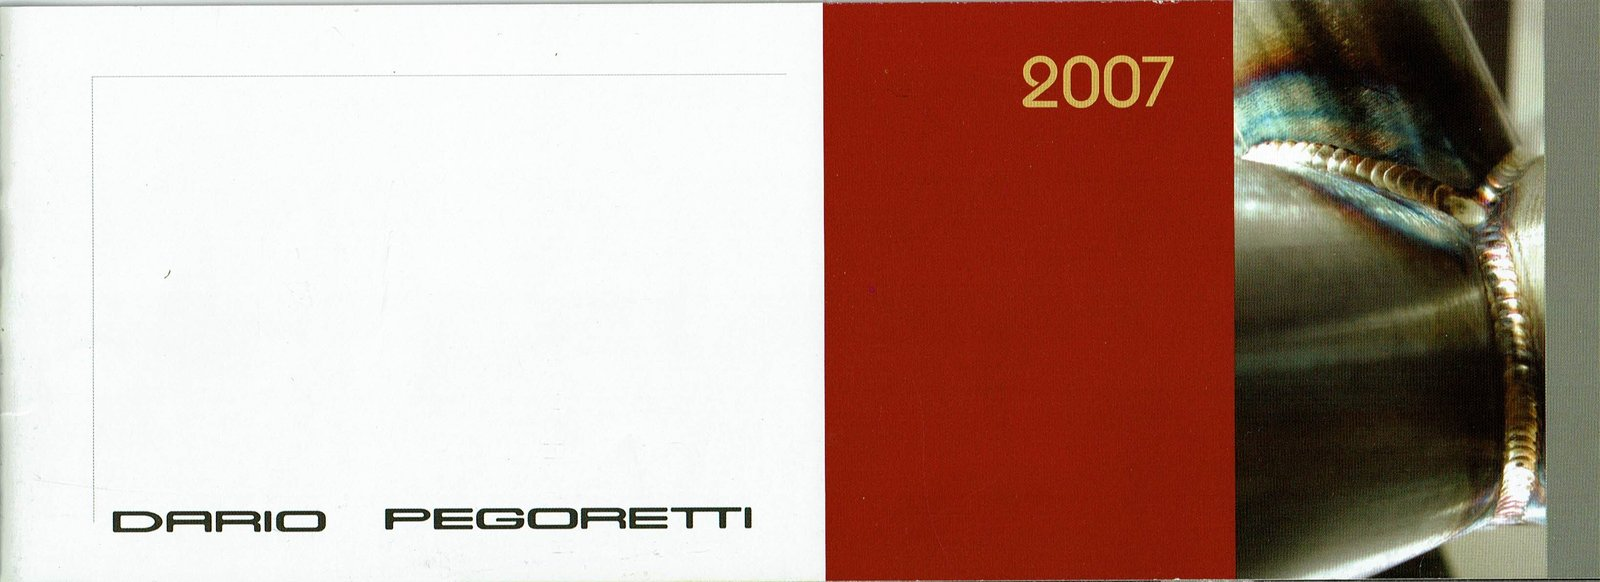 Link to scanned image of the 2007 Pegoretti catalog